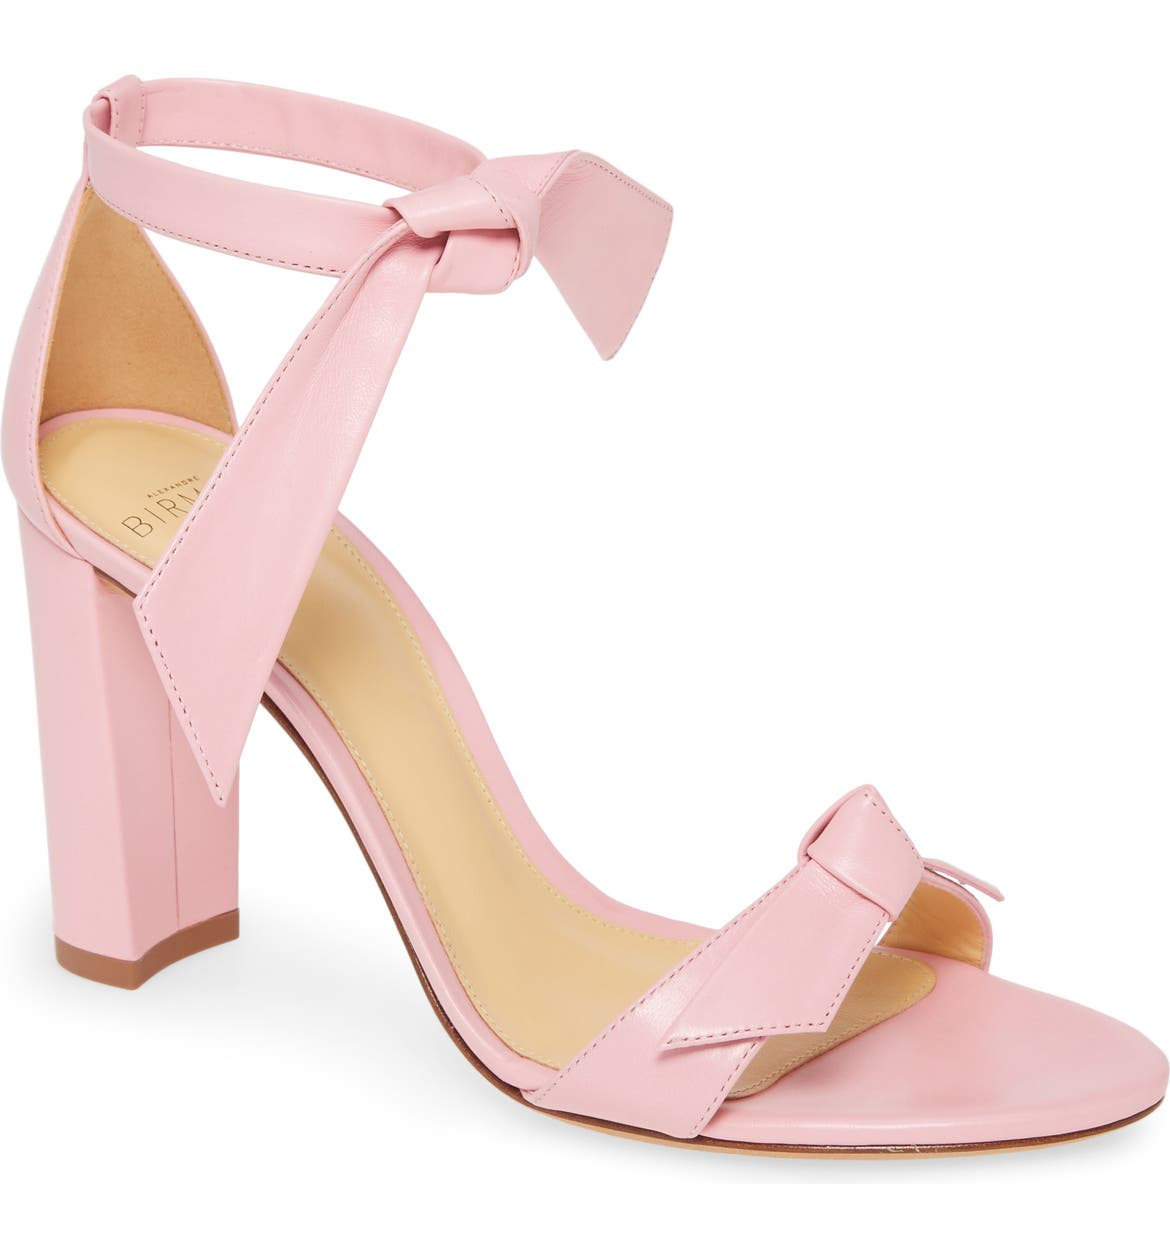 Alexandre Birman pink leather Clarita heels.